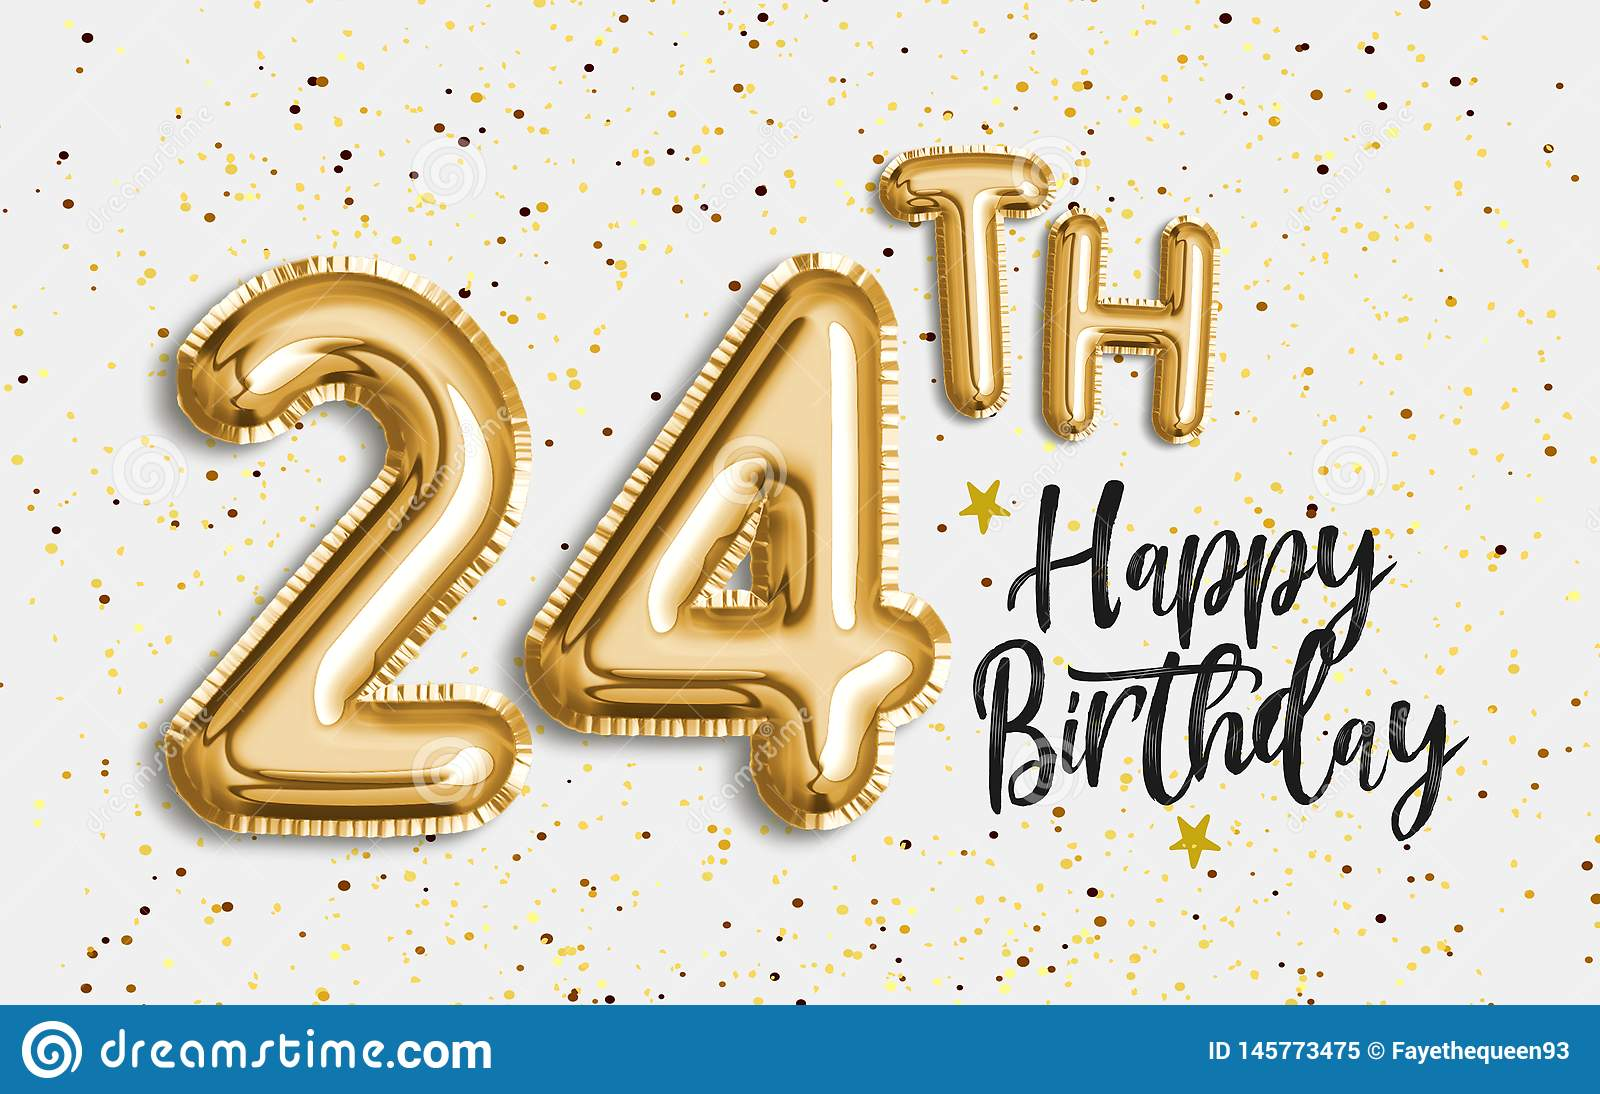 Happy 24th Birthday Gold Foil Balloon Greeting Background Stock Illustration Illustration Of Celebrating Template 145773475